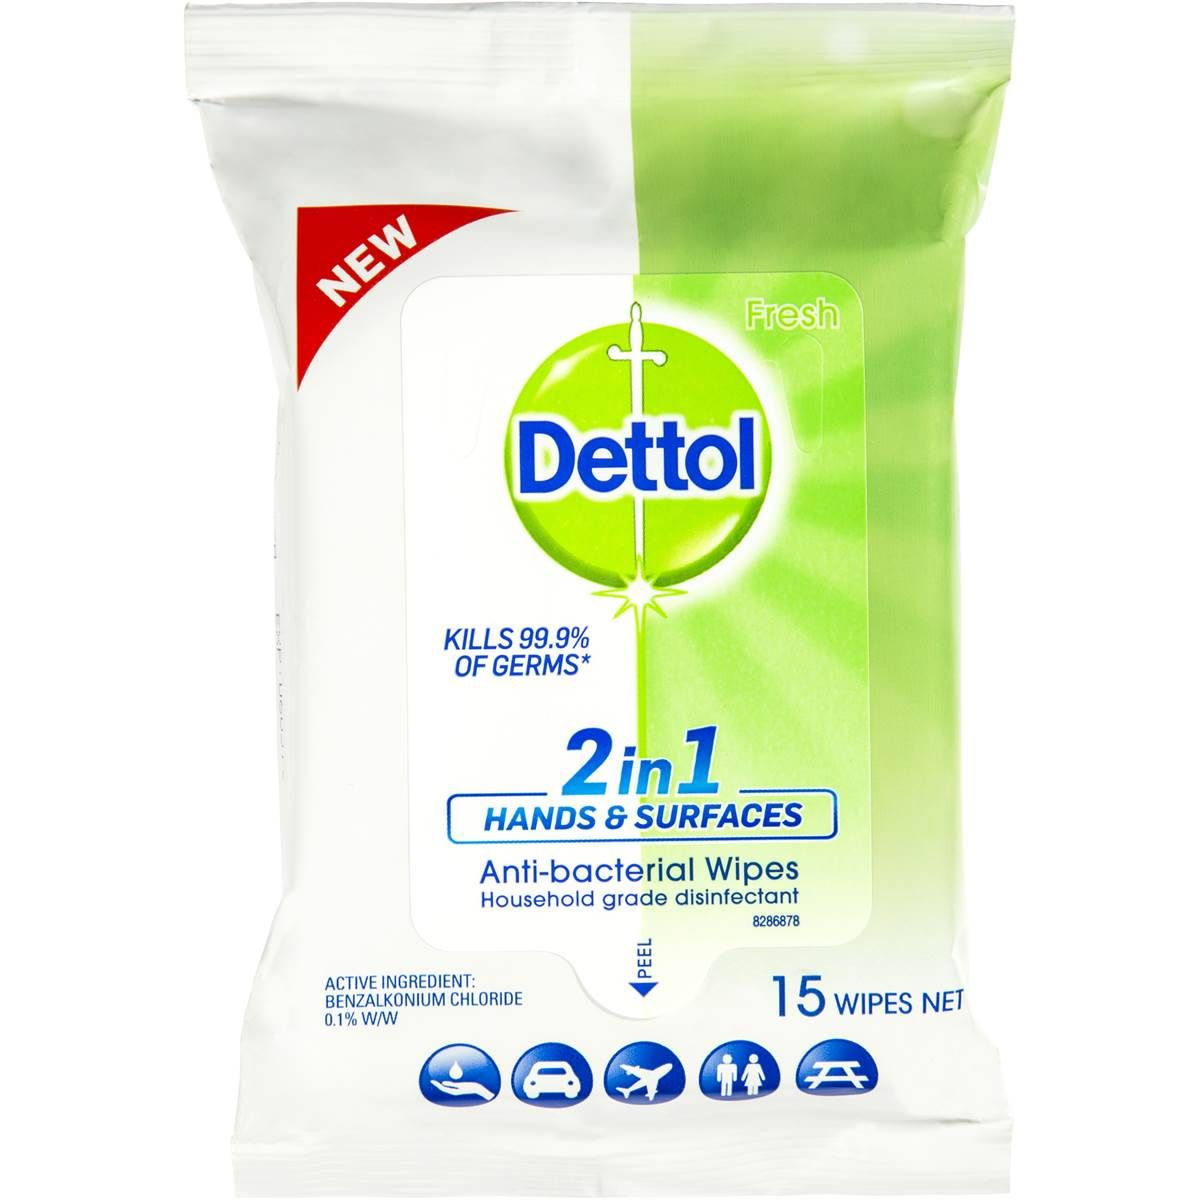 Dettol 2 In 1 Anti Bacterial Wipes Image